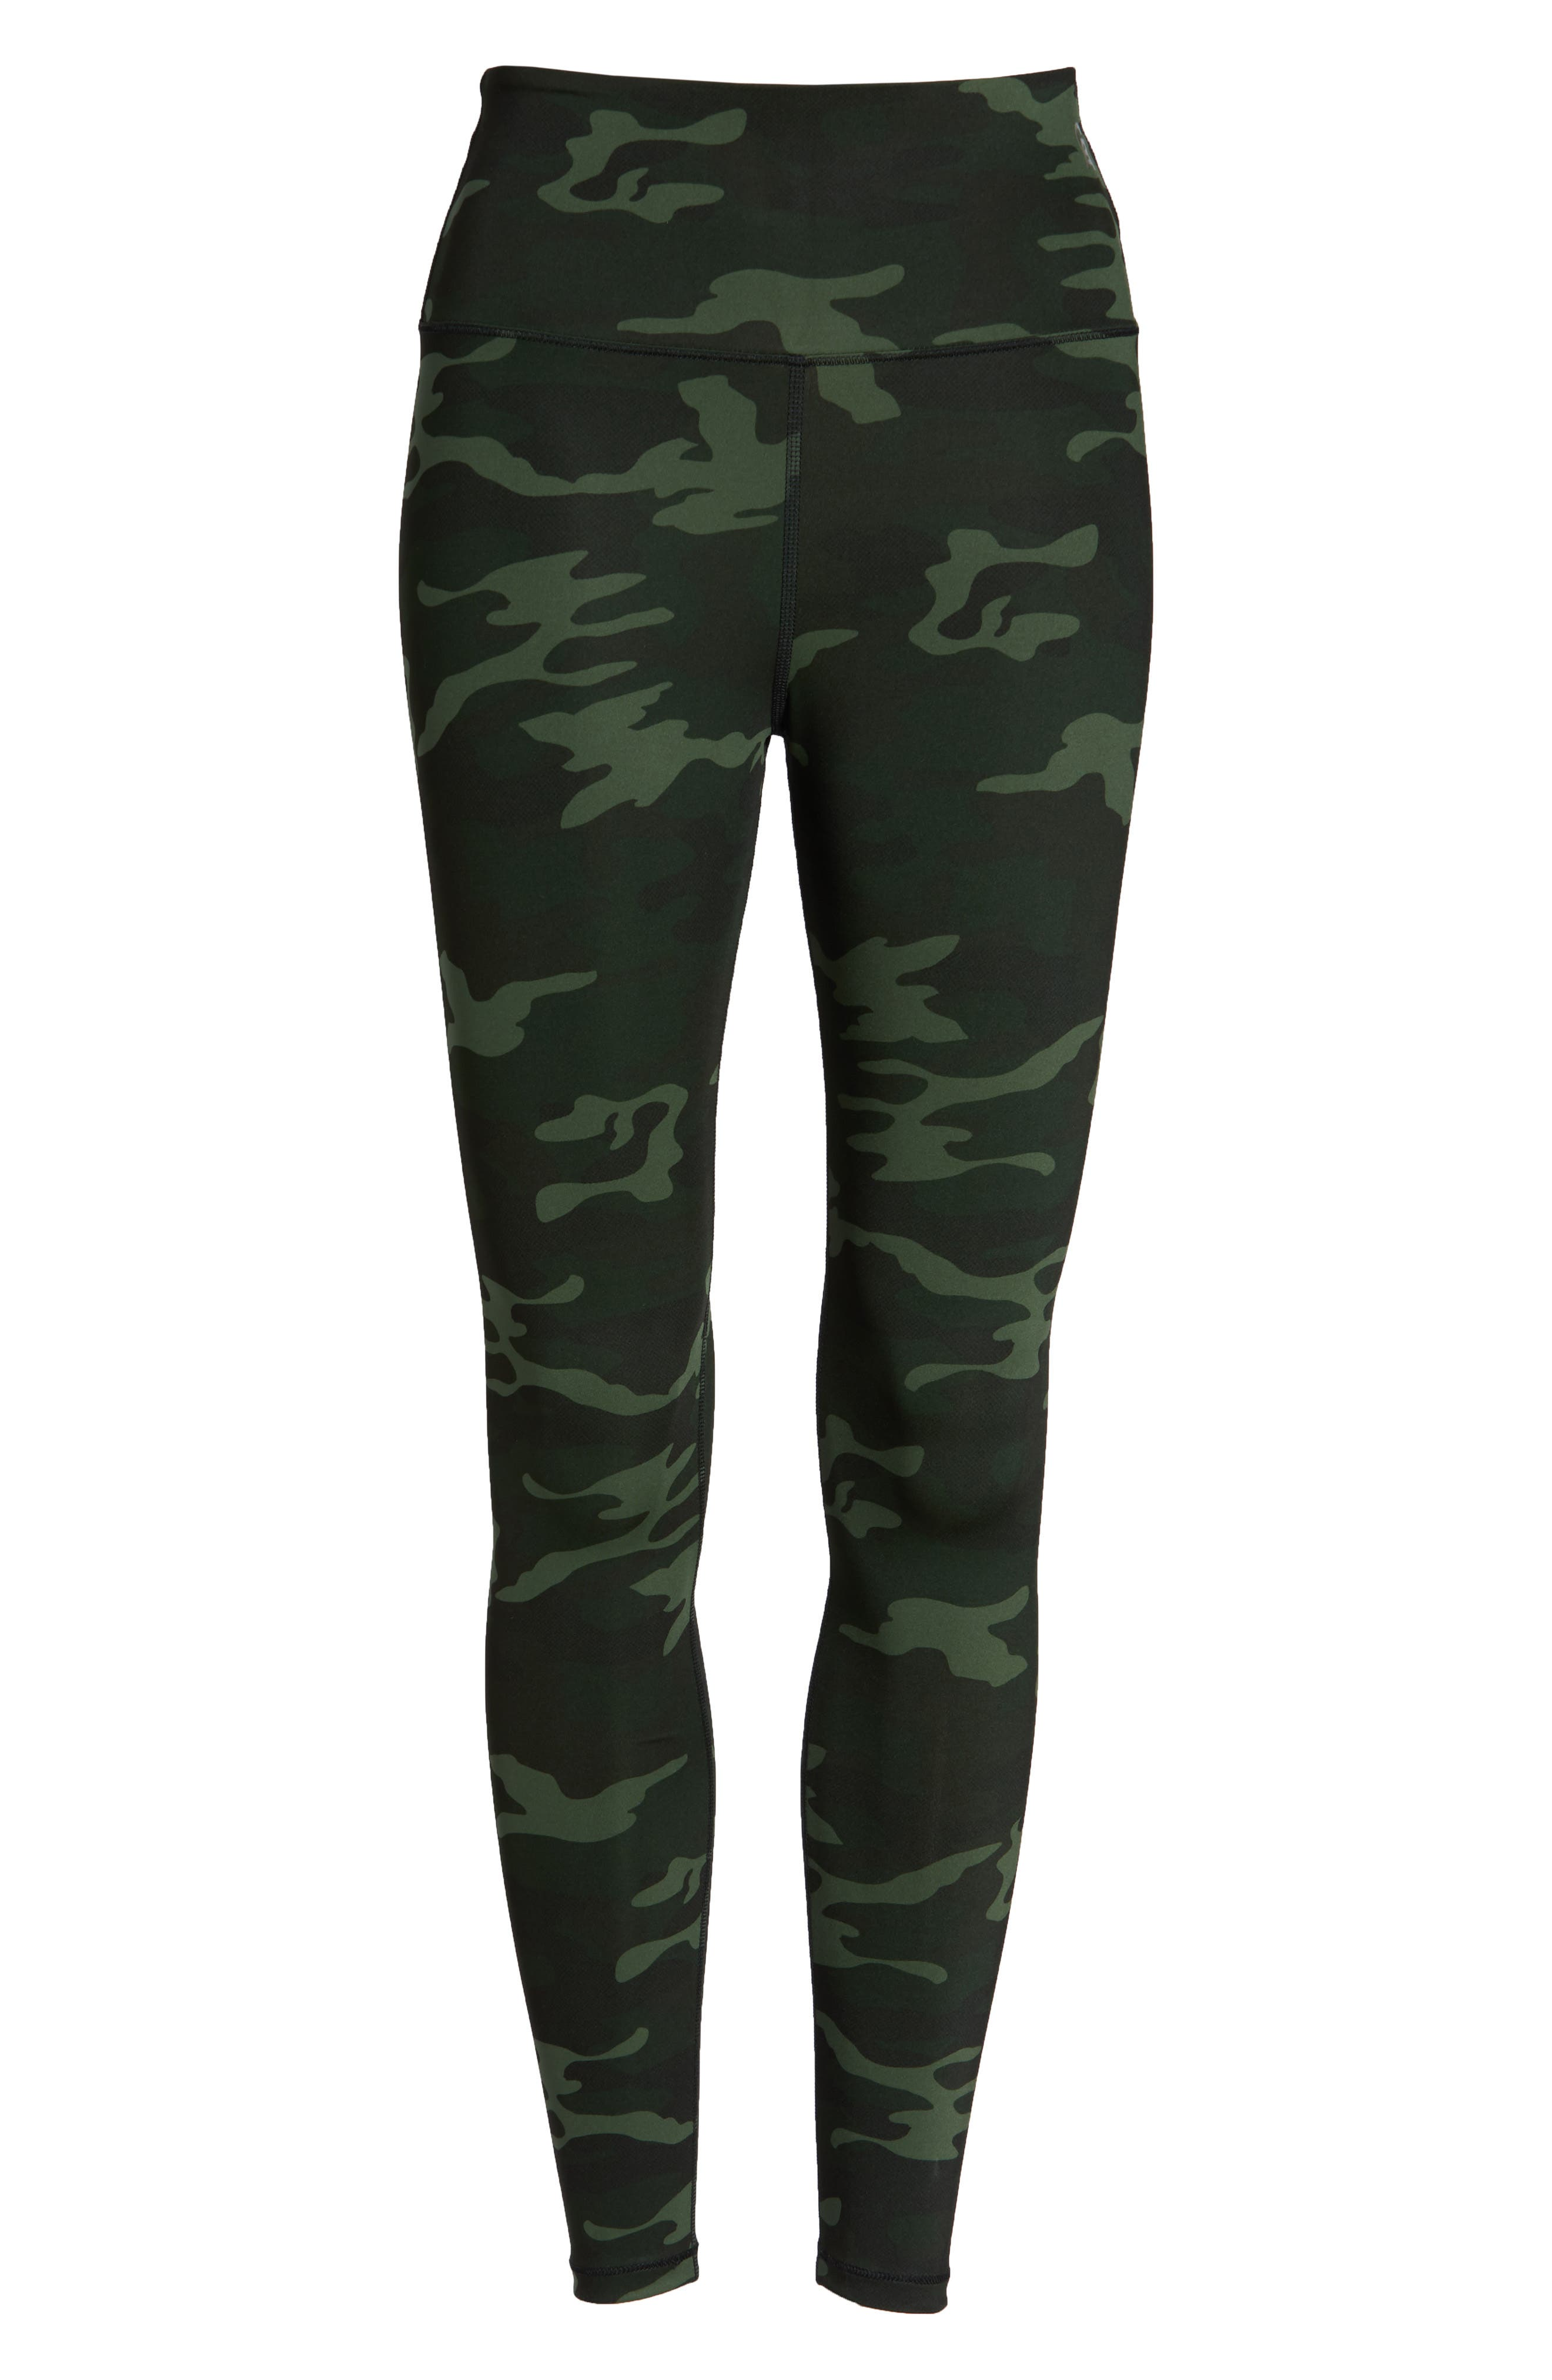 GOOD AMERICAN, Core Strength High Waist Leggings, Alternate thumbnail 7, color, CAMO001